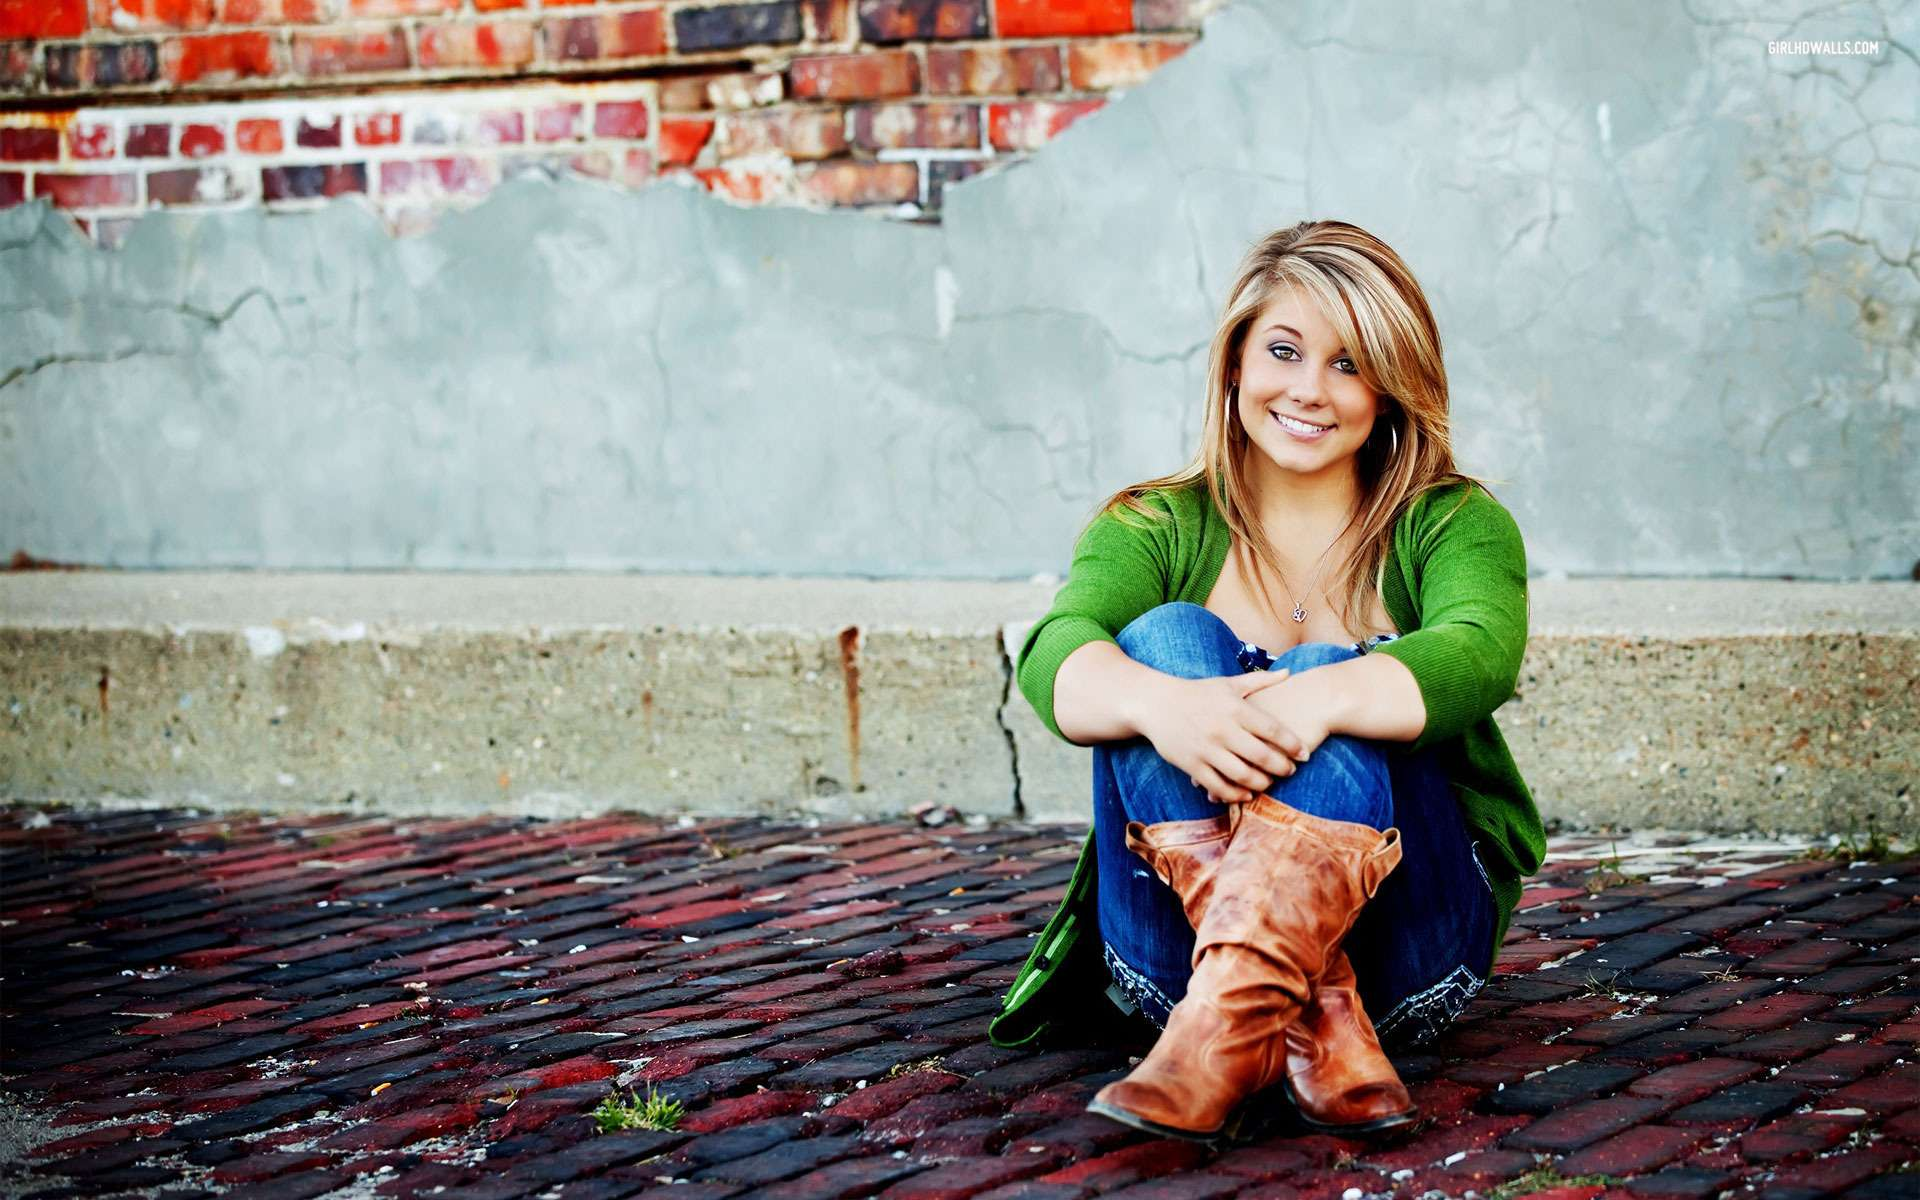 Nice Girl Wallpaper For Fb Shawn Johnson 1 Wallpapers Hd Wallpapers